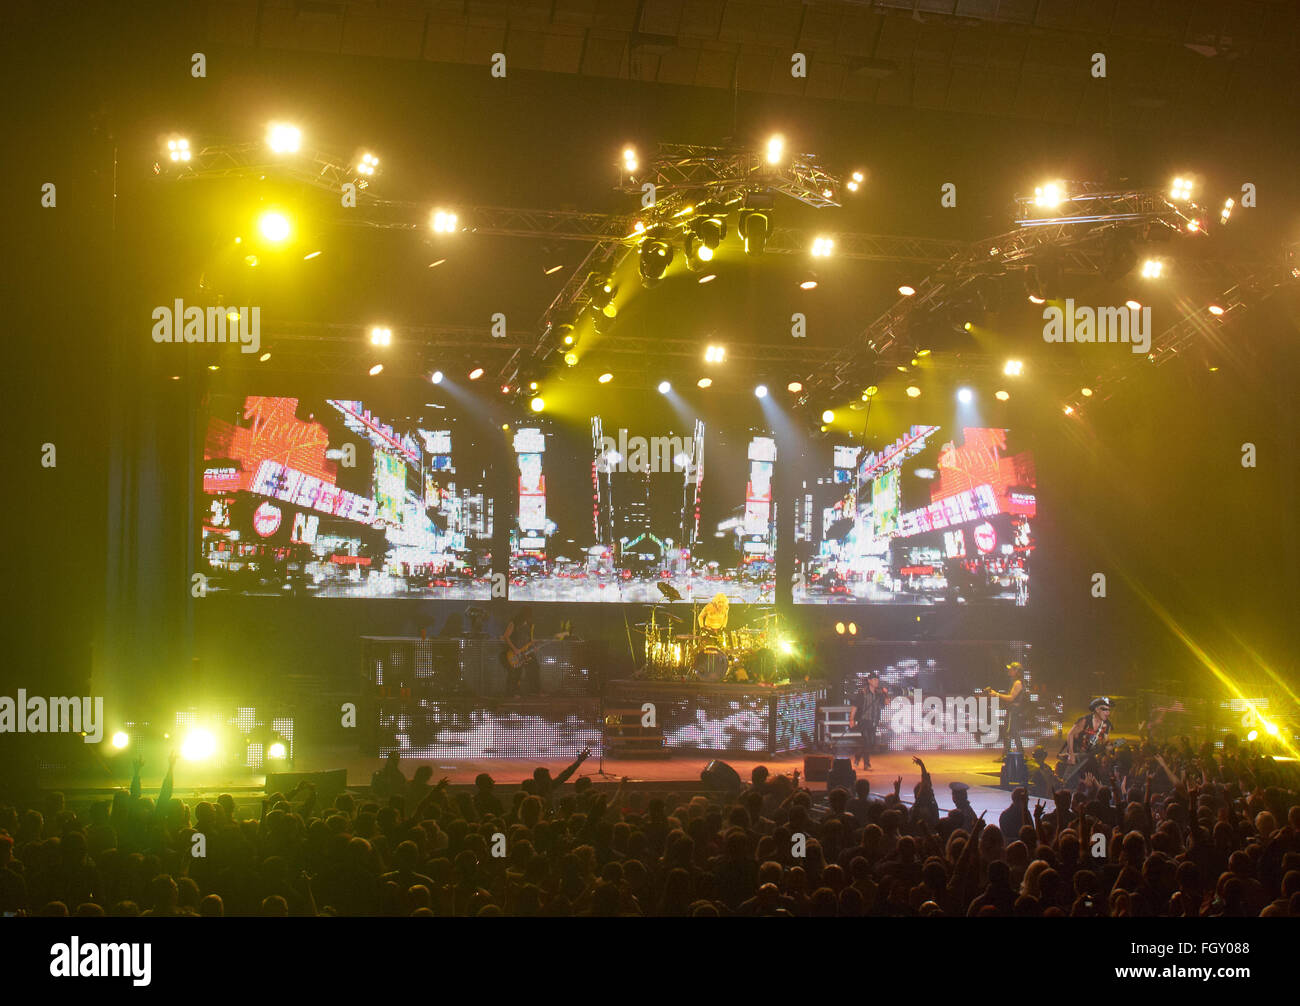 DNIPROPETROVSK, UKRAINE - OCTOBER 31, 2012: Crowd before the highlighted stage where the hard rock band Scorpions - Stock Image